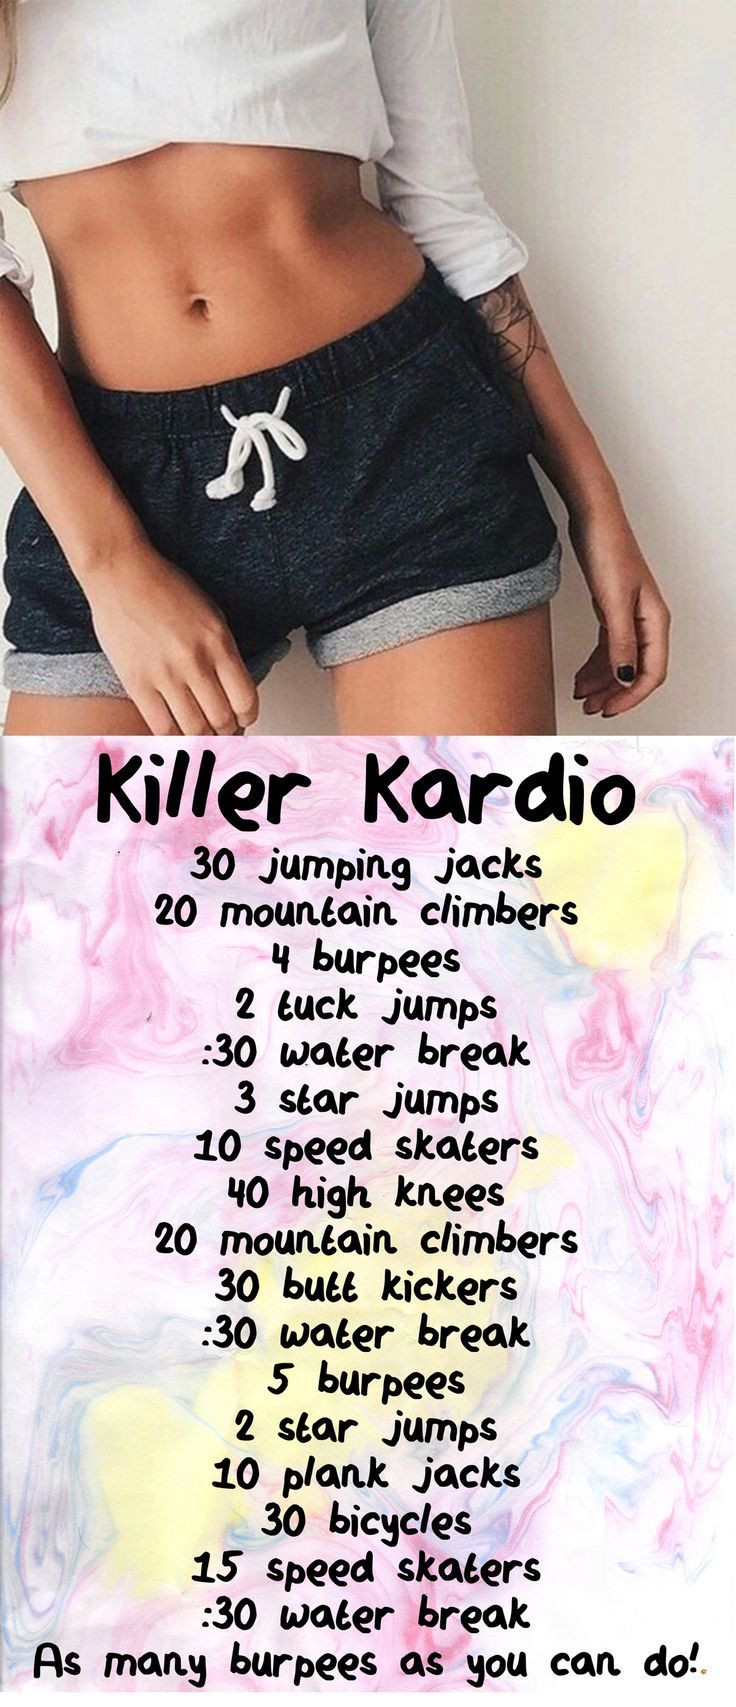 Workouts Cardio Workout At Home For Beginners Fat Burning And